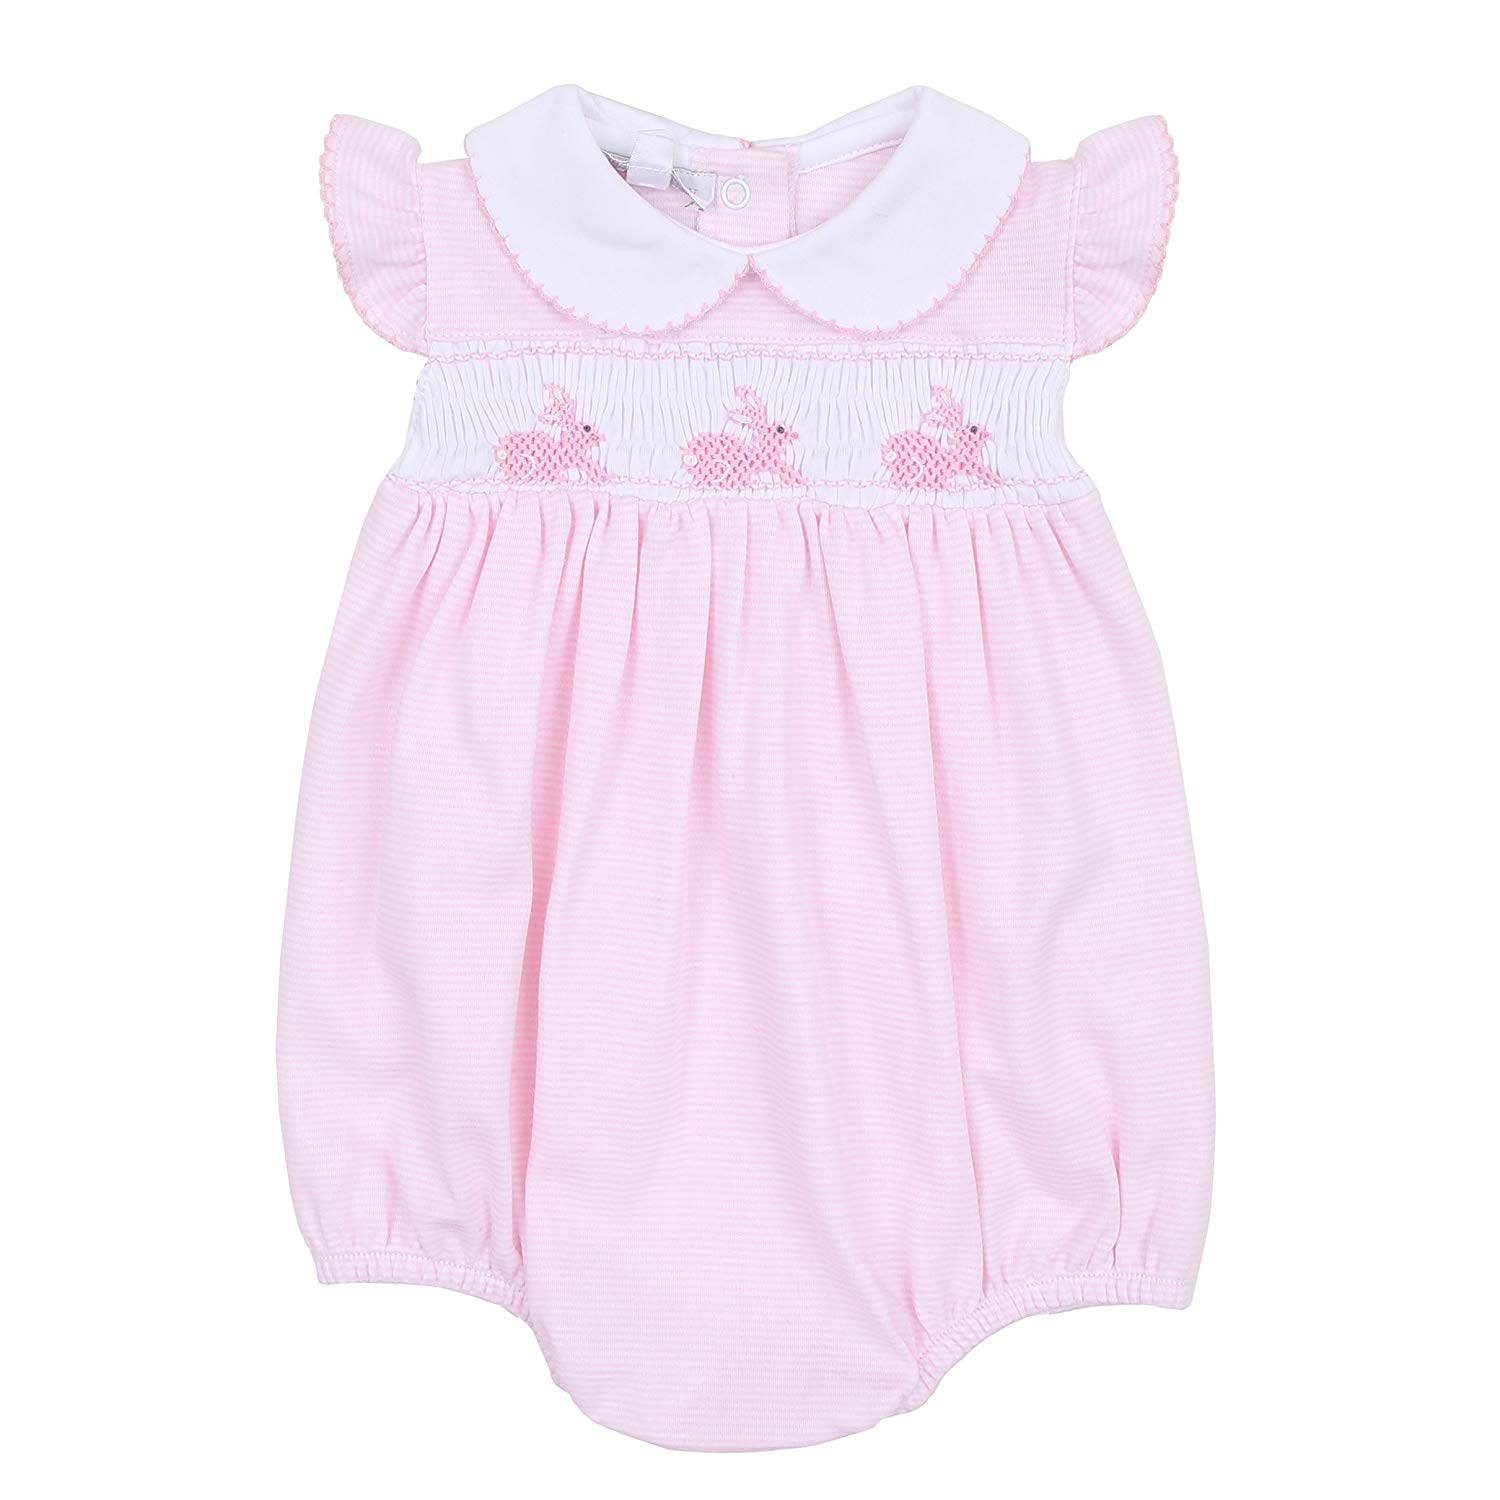 aad3f1982 Get Quotations · Magnolia Baby Baby Girl Classic Little Bunny Smocked  Collared Bubble Pink